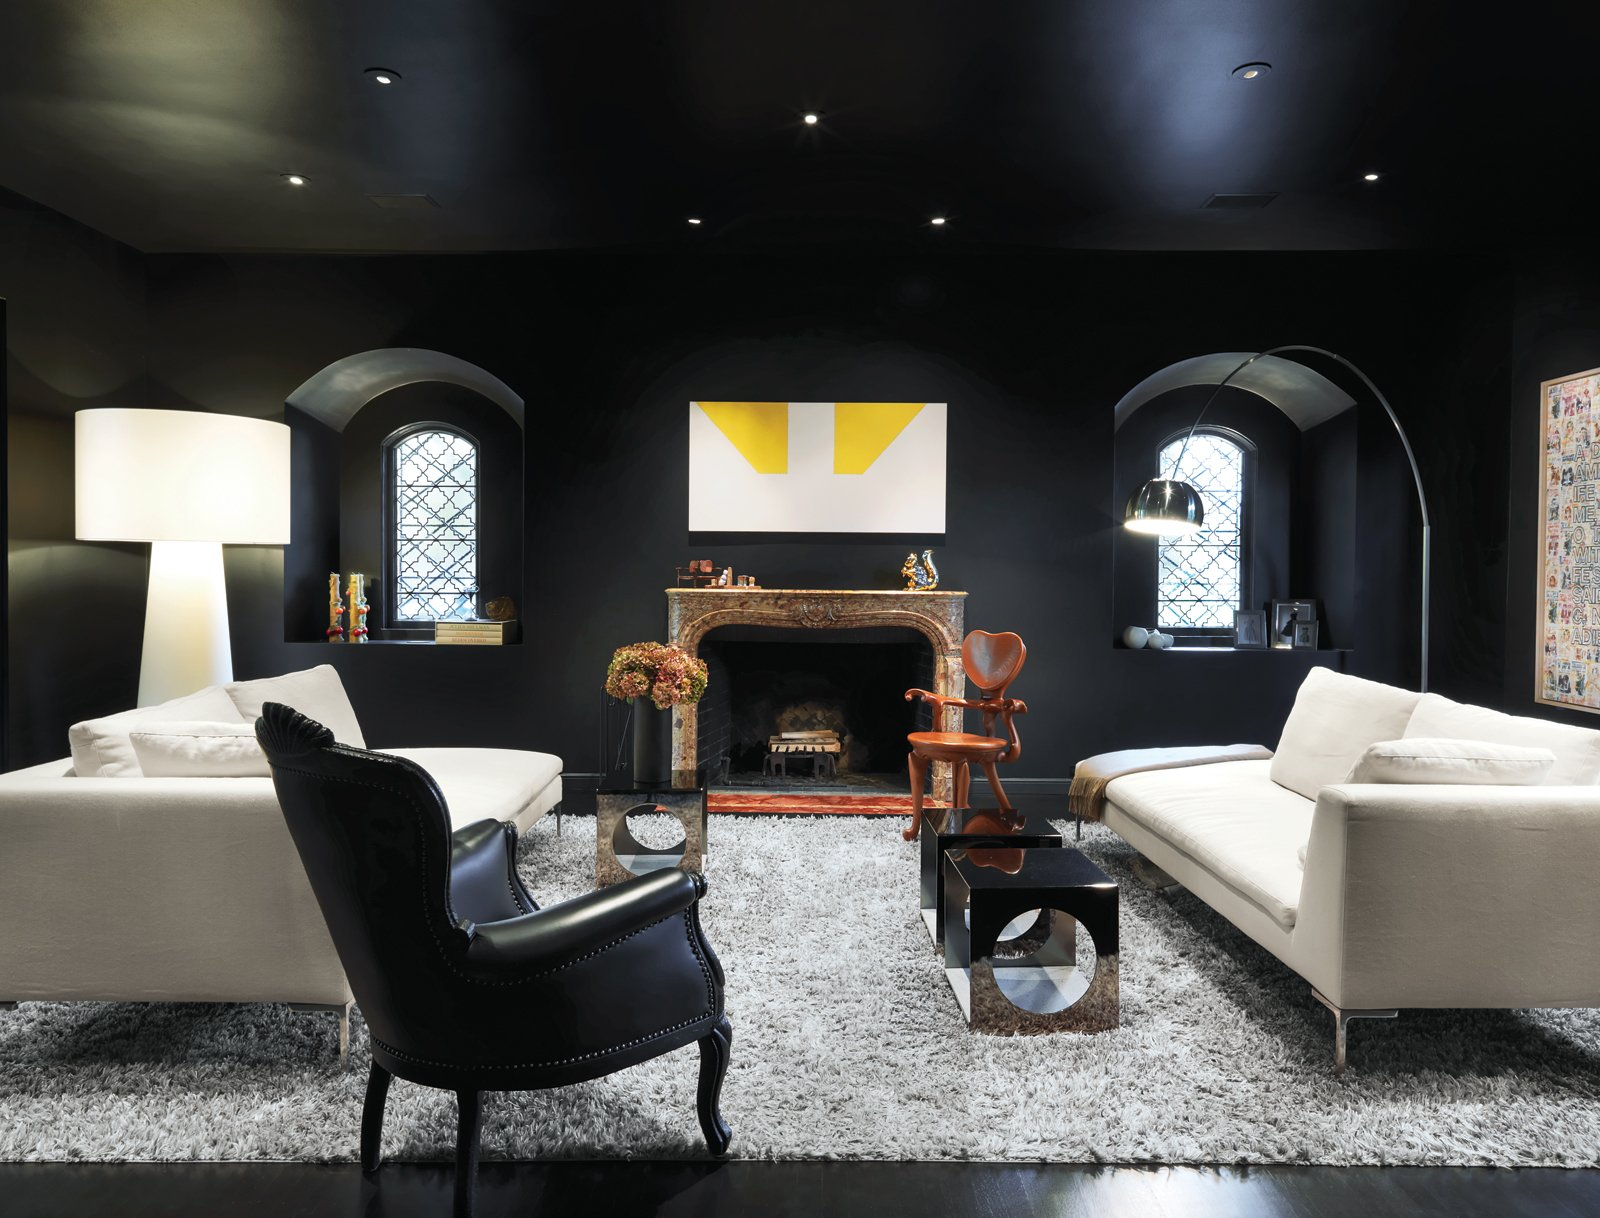 Turin embraced the dark in her striking living room—the deep paint is Le Corbusier's 4320J from Les Couleurs Suisse. An iconic Arco lamp by Achille and Pier Giacomo Castiglioni for Flos, Charles sofas by Antonio Citterio for B&B Italia, an Extra Big Shadow floor lamp by Marcel Wanders for Cappellini, and a painting over the mantel by Martin Barré shed a little light. Tagged: Living Room, Sofa, Chair, Rug Floor, Dark Hardwood Floor, Wood Burning Fireplace, Floor Lighting, and Standard Layout Fireplace.  Photo 4 of 8 in A Traditional Home and an Impeccable Eye